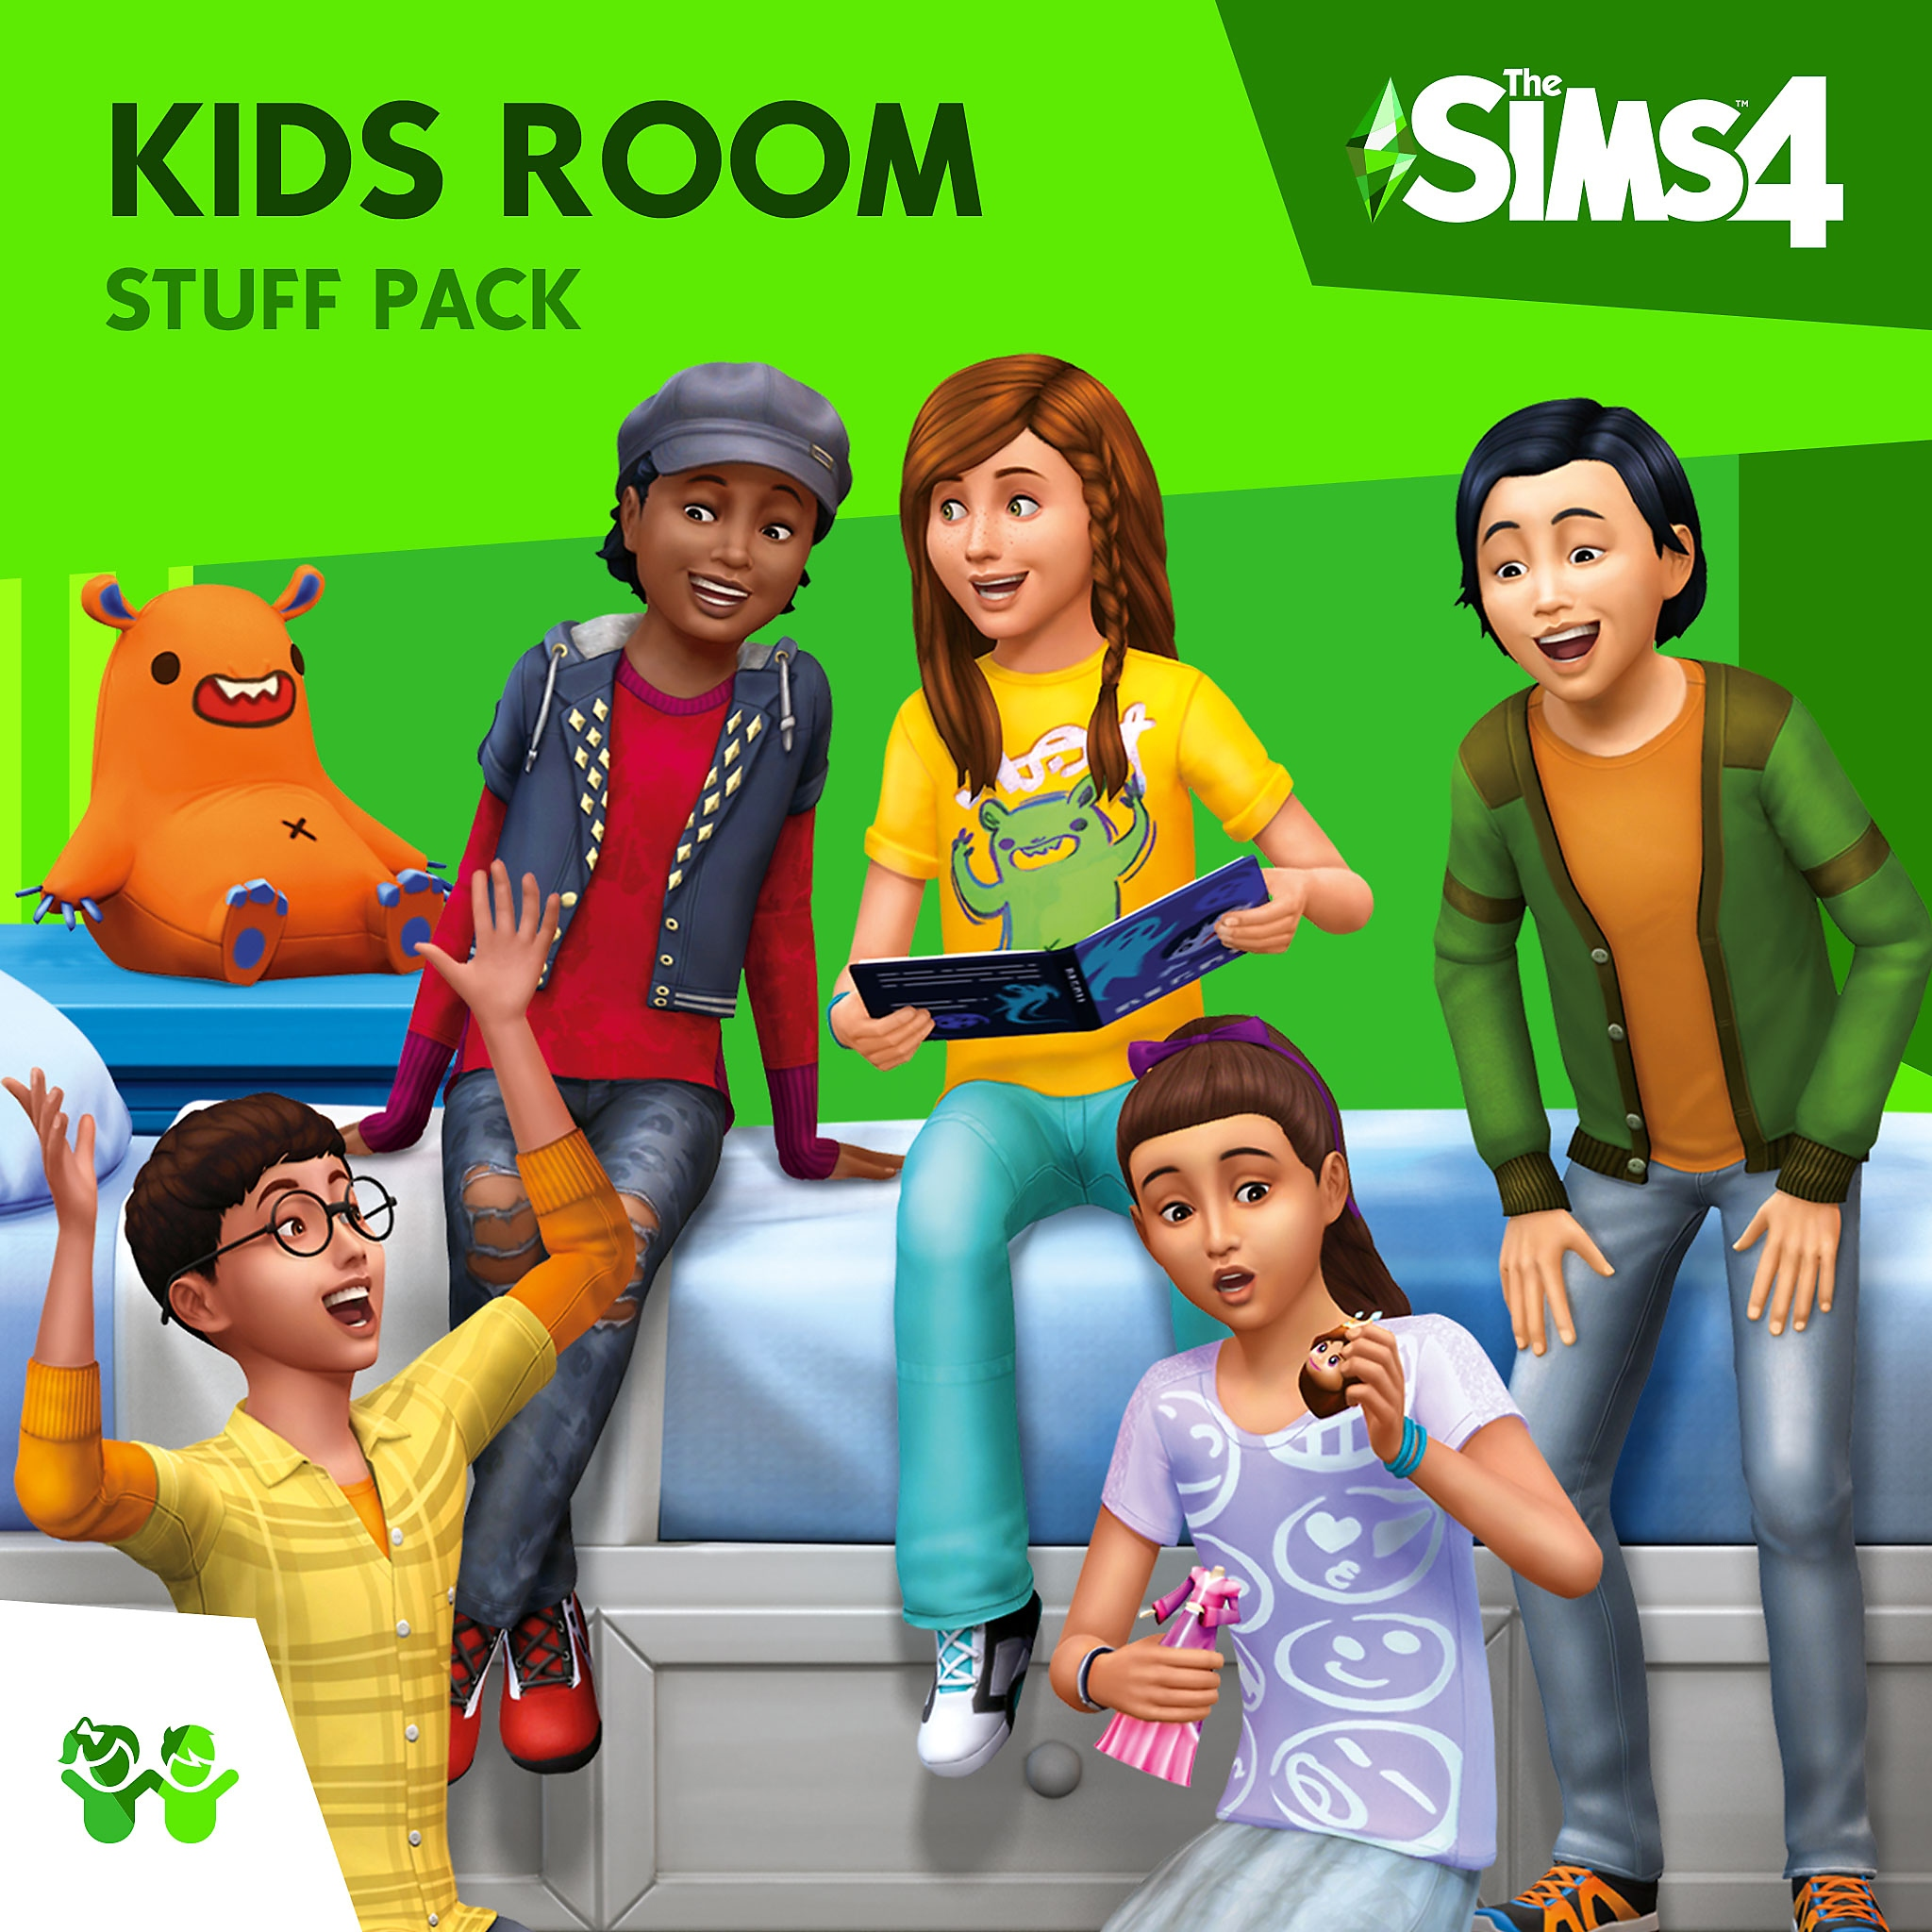 Kids Room Stuff Pack